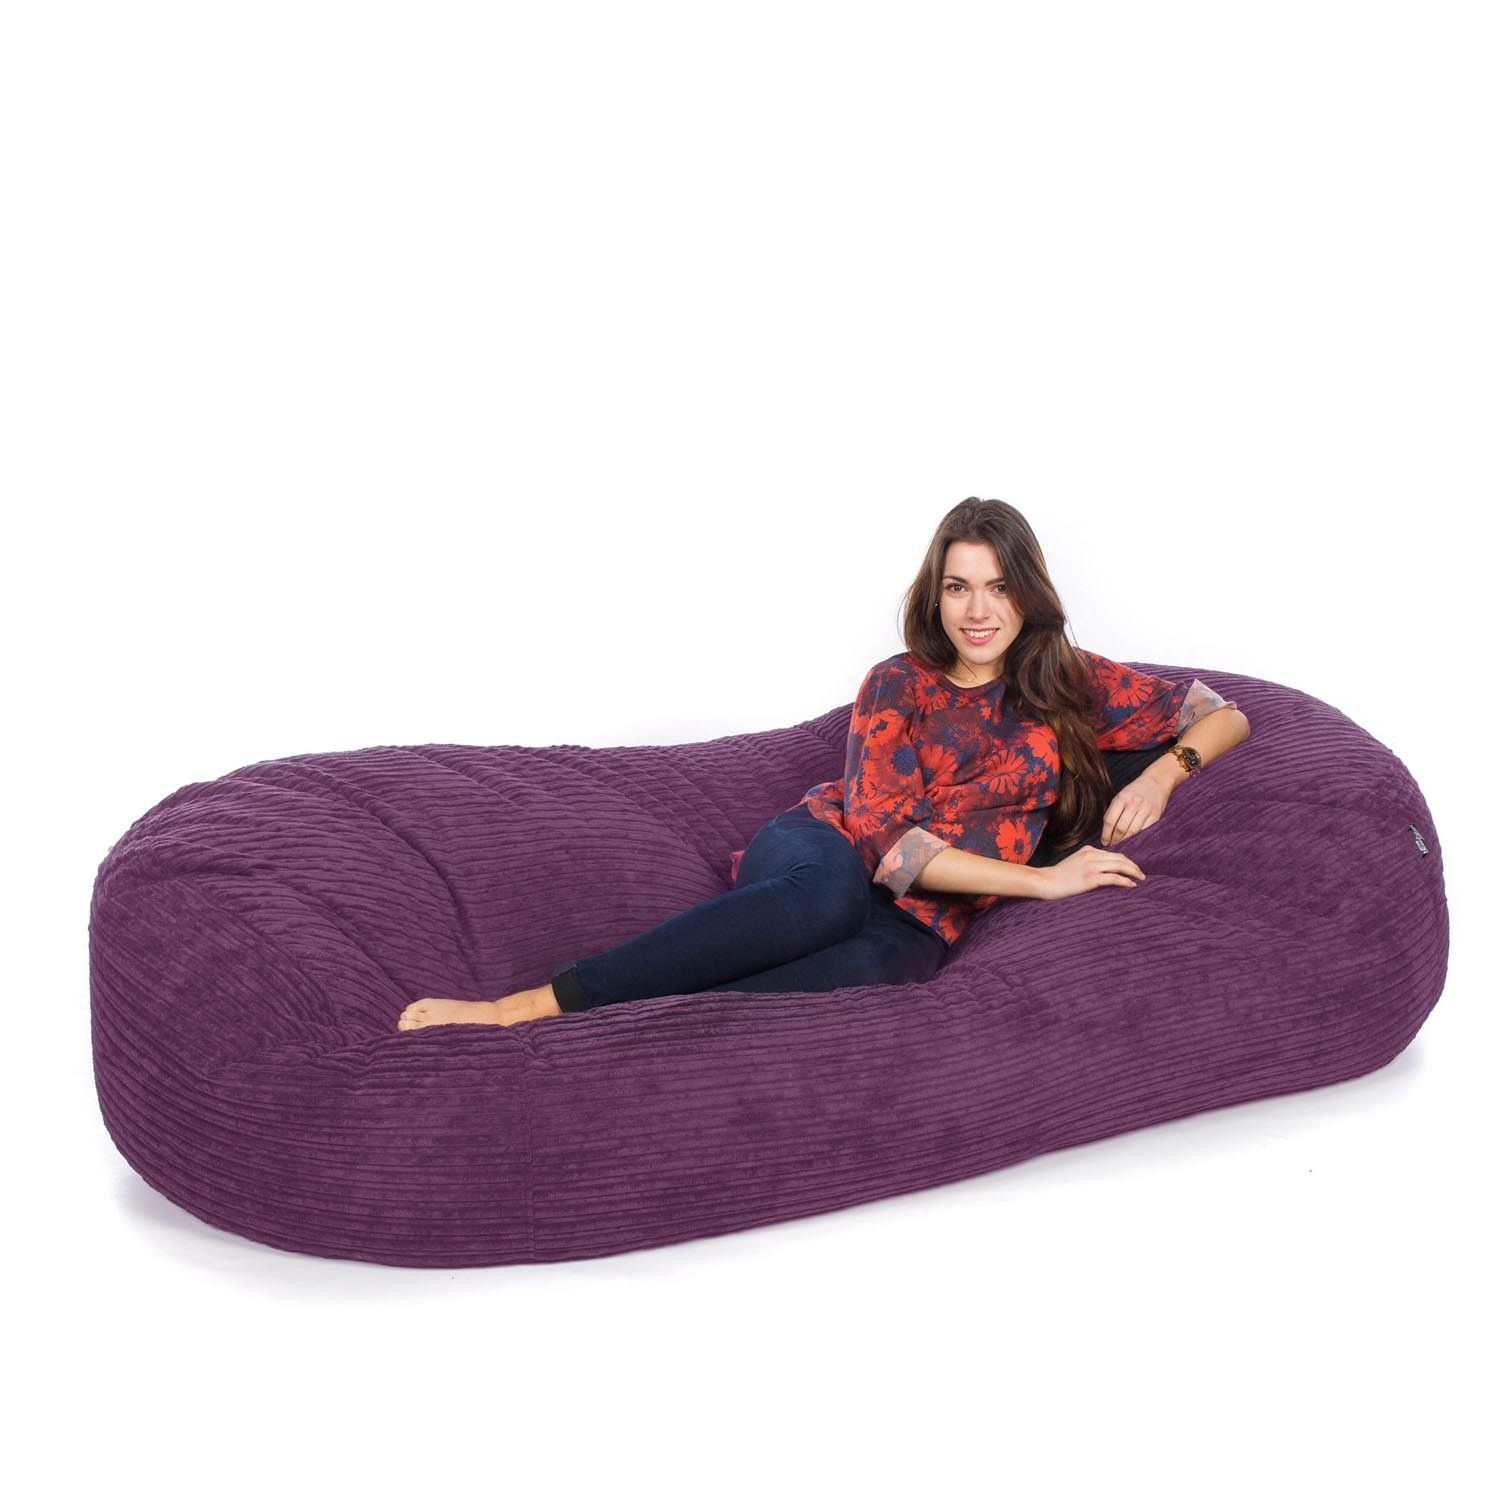 Peachy Corduroy Sofa Bed Bean Bag Purple Basement Bean Bag Andrewgaddart Wooden Chair Designs For Living Room Andrewgaddartcom